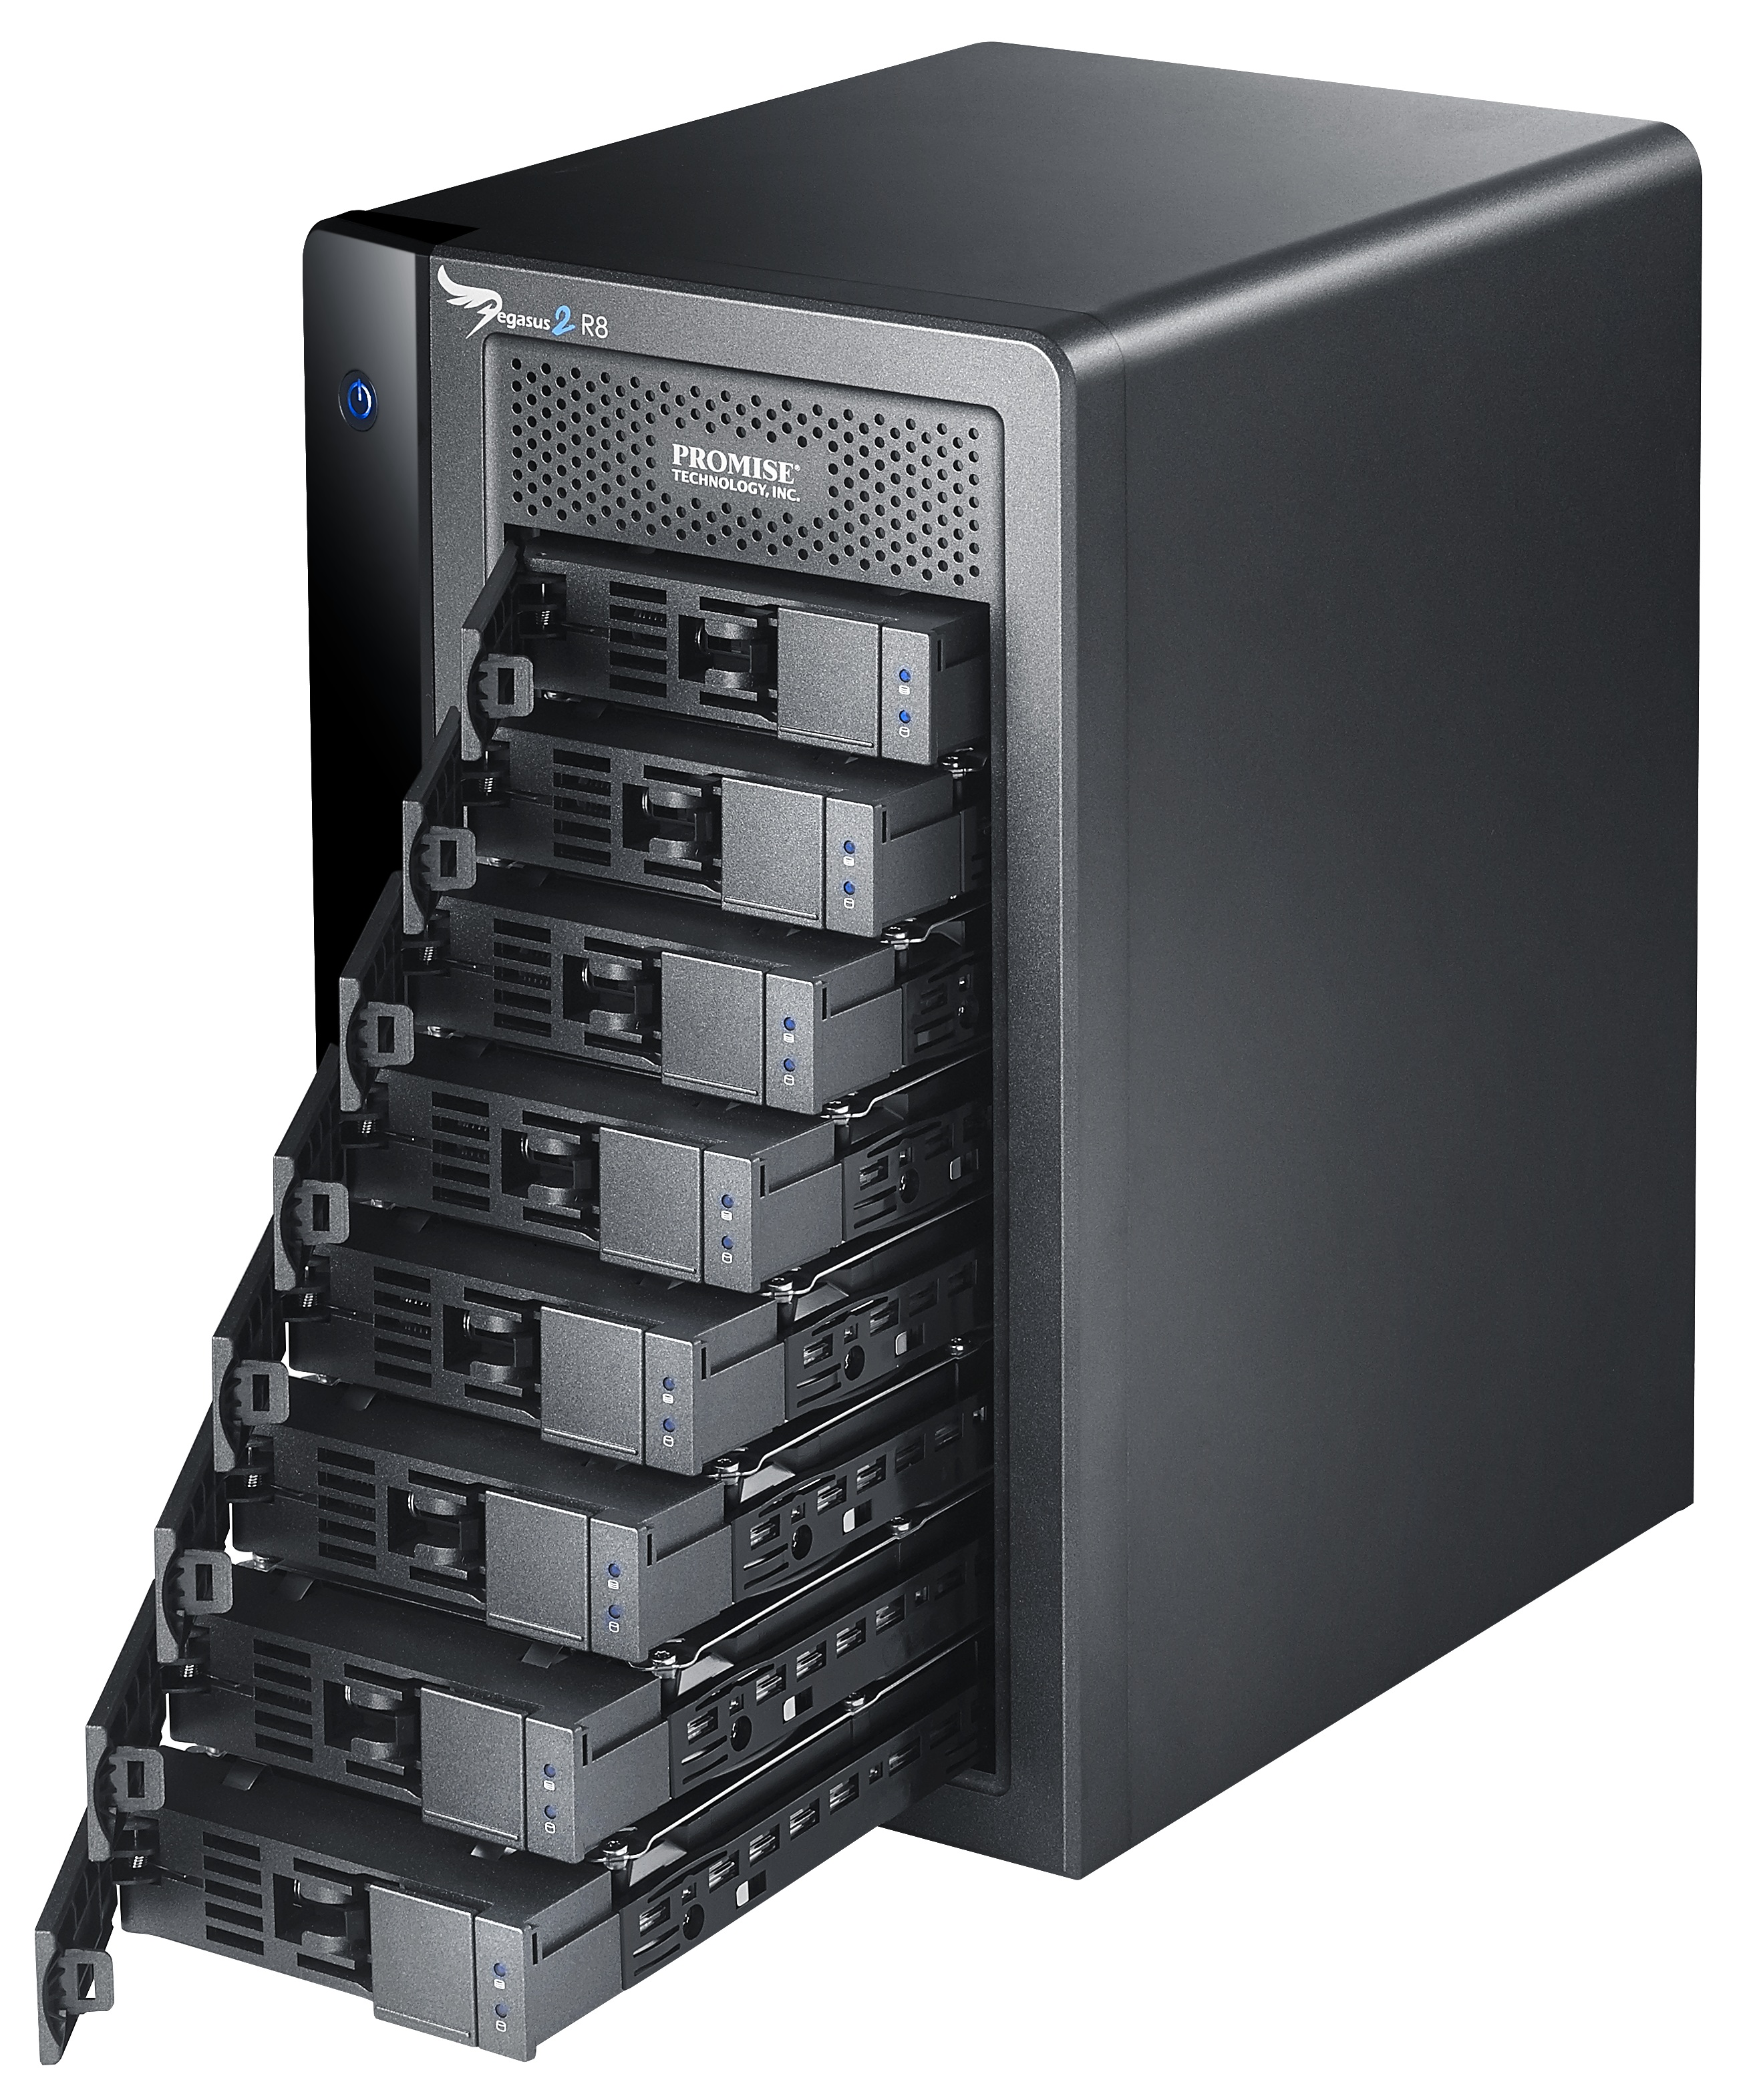 RAID Data Recovery and Its Reliability